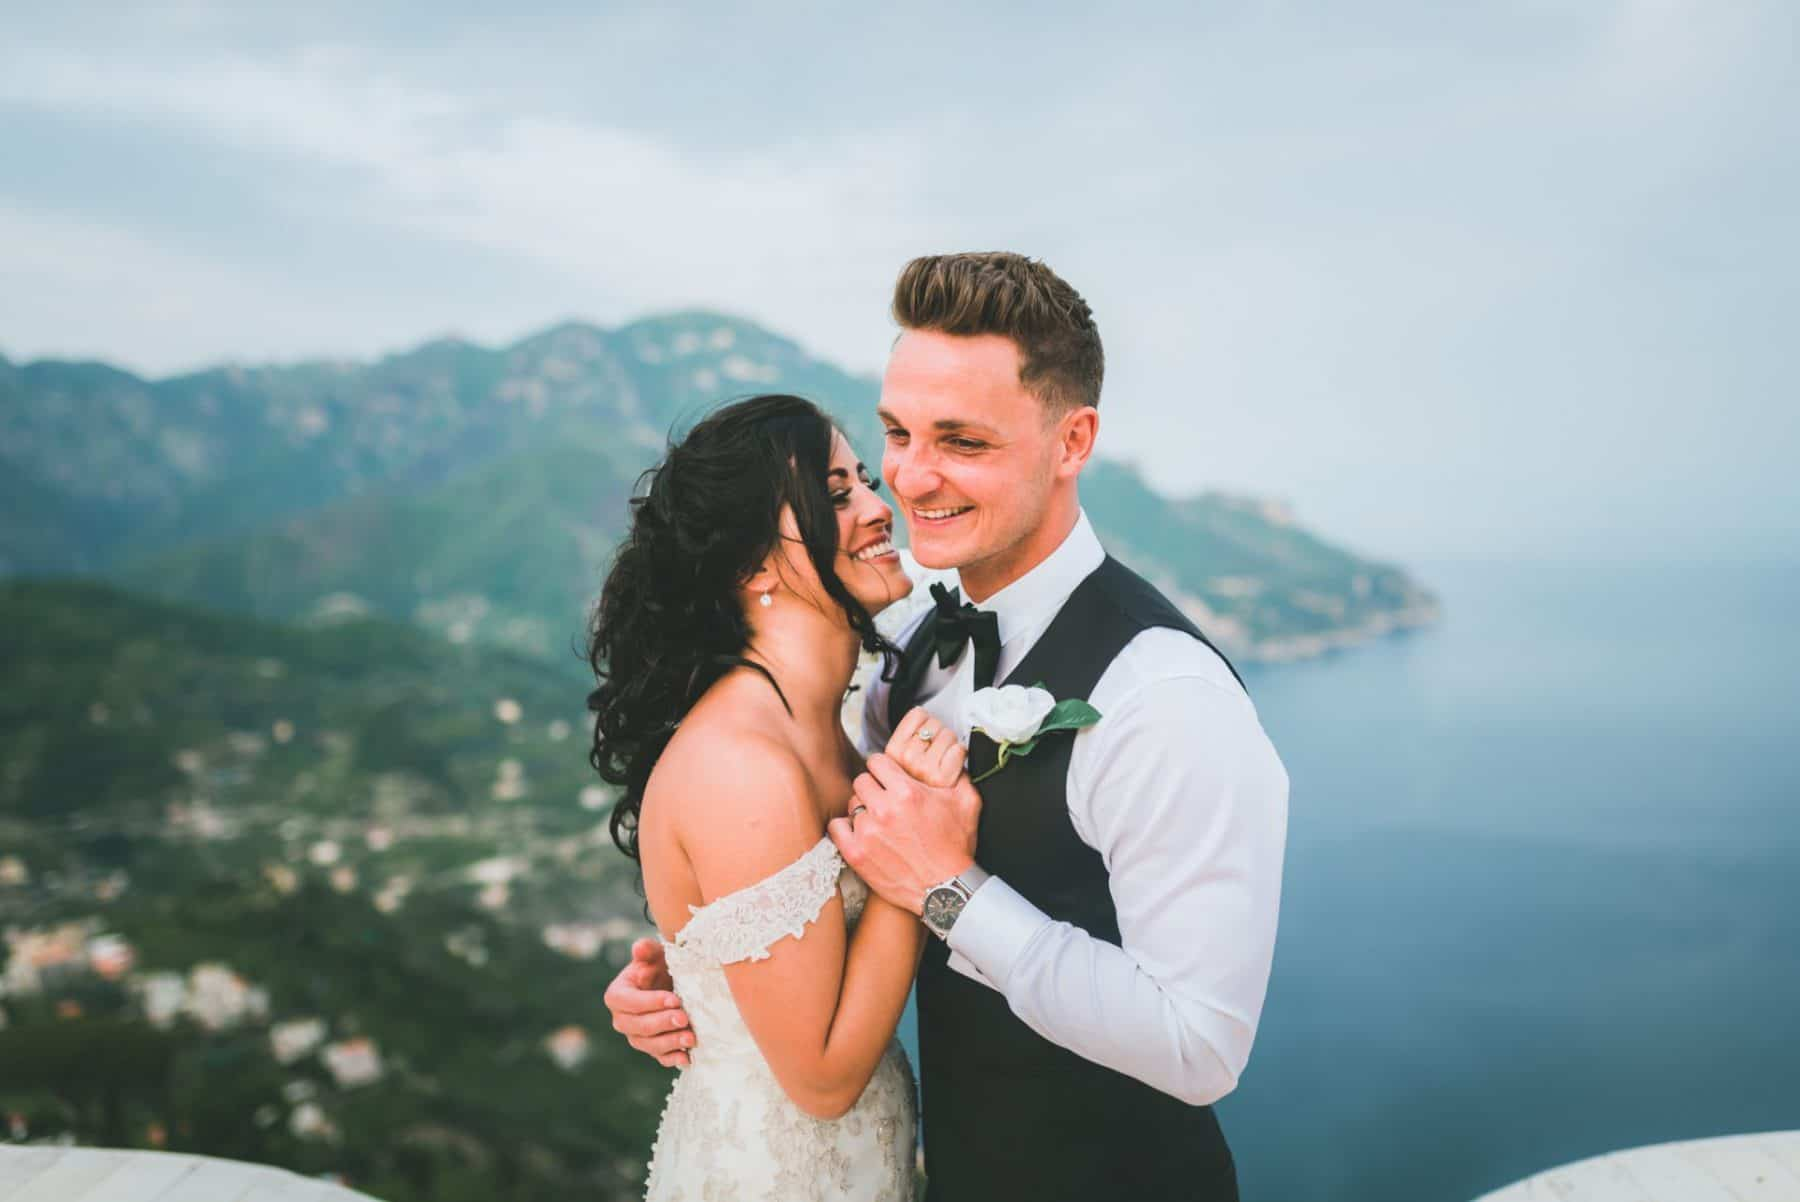 Bride and groom in ravello italy destination wedding photography Cardiff & South Wales